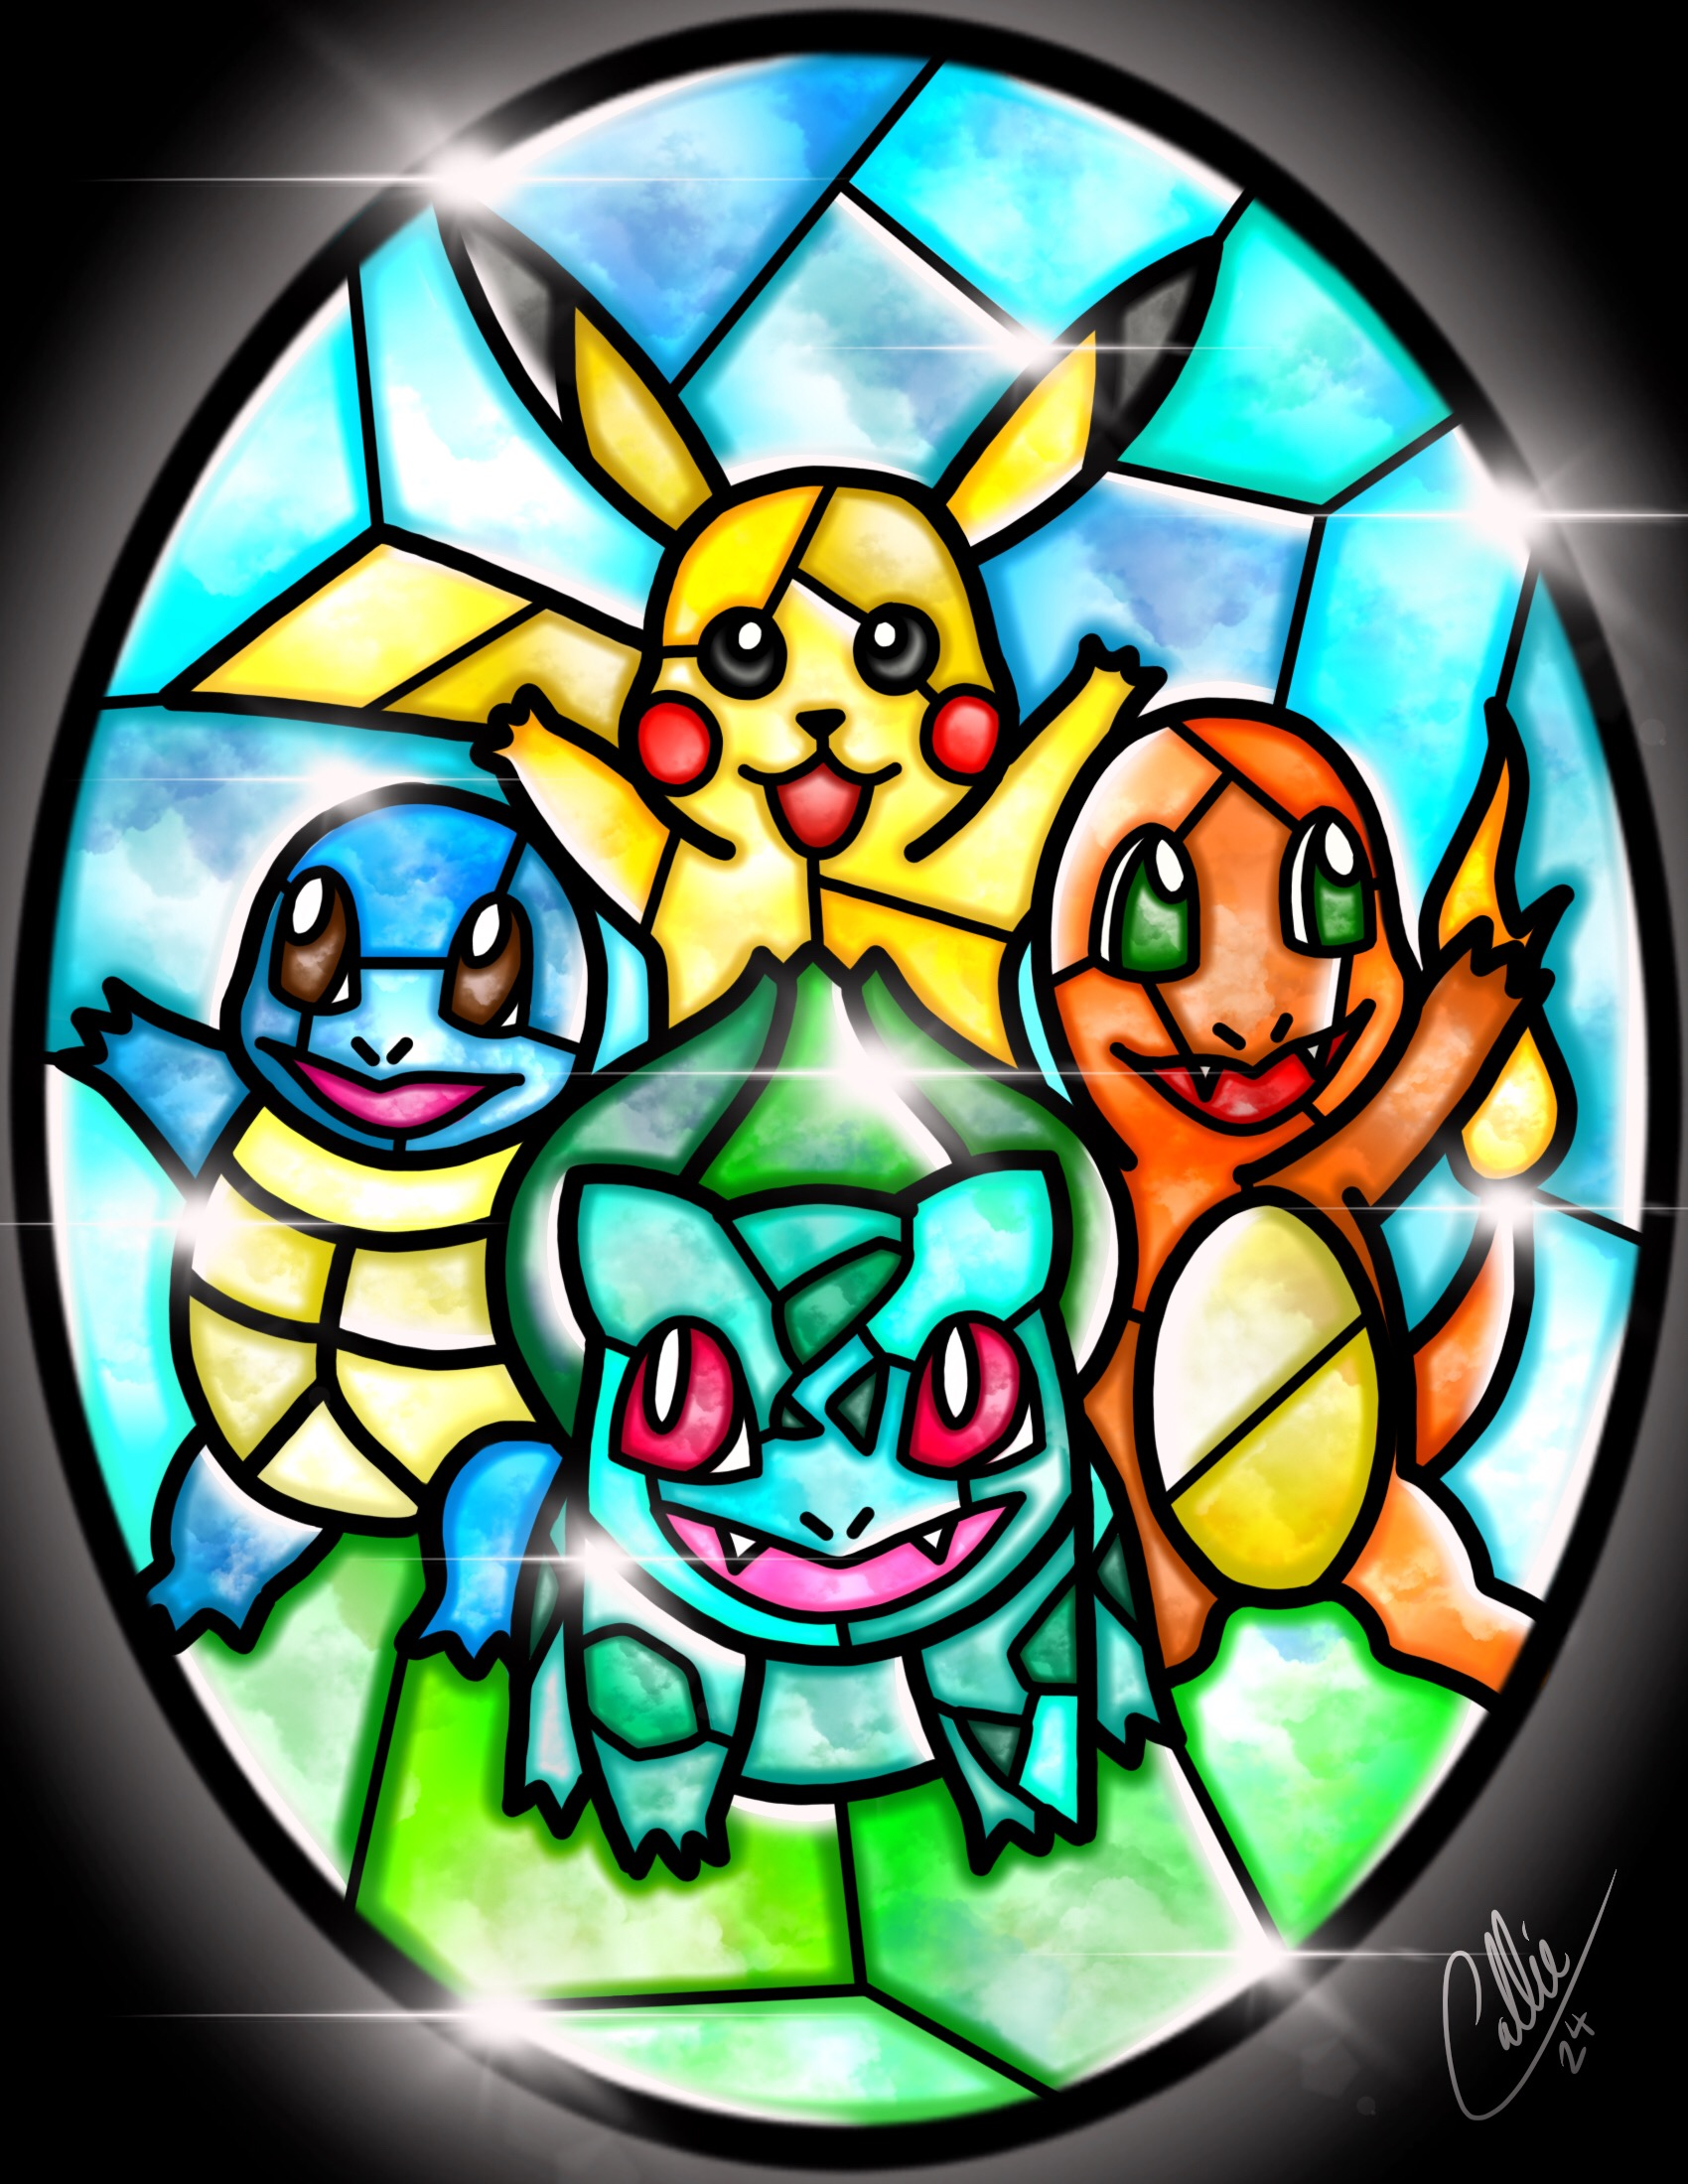 Pokemon Stained Glass Art Images Pokemon Images